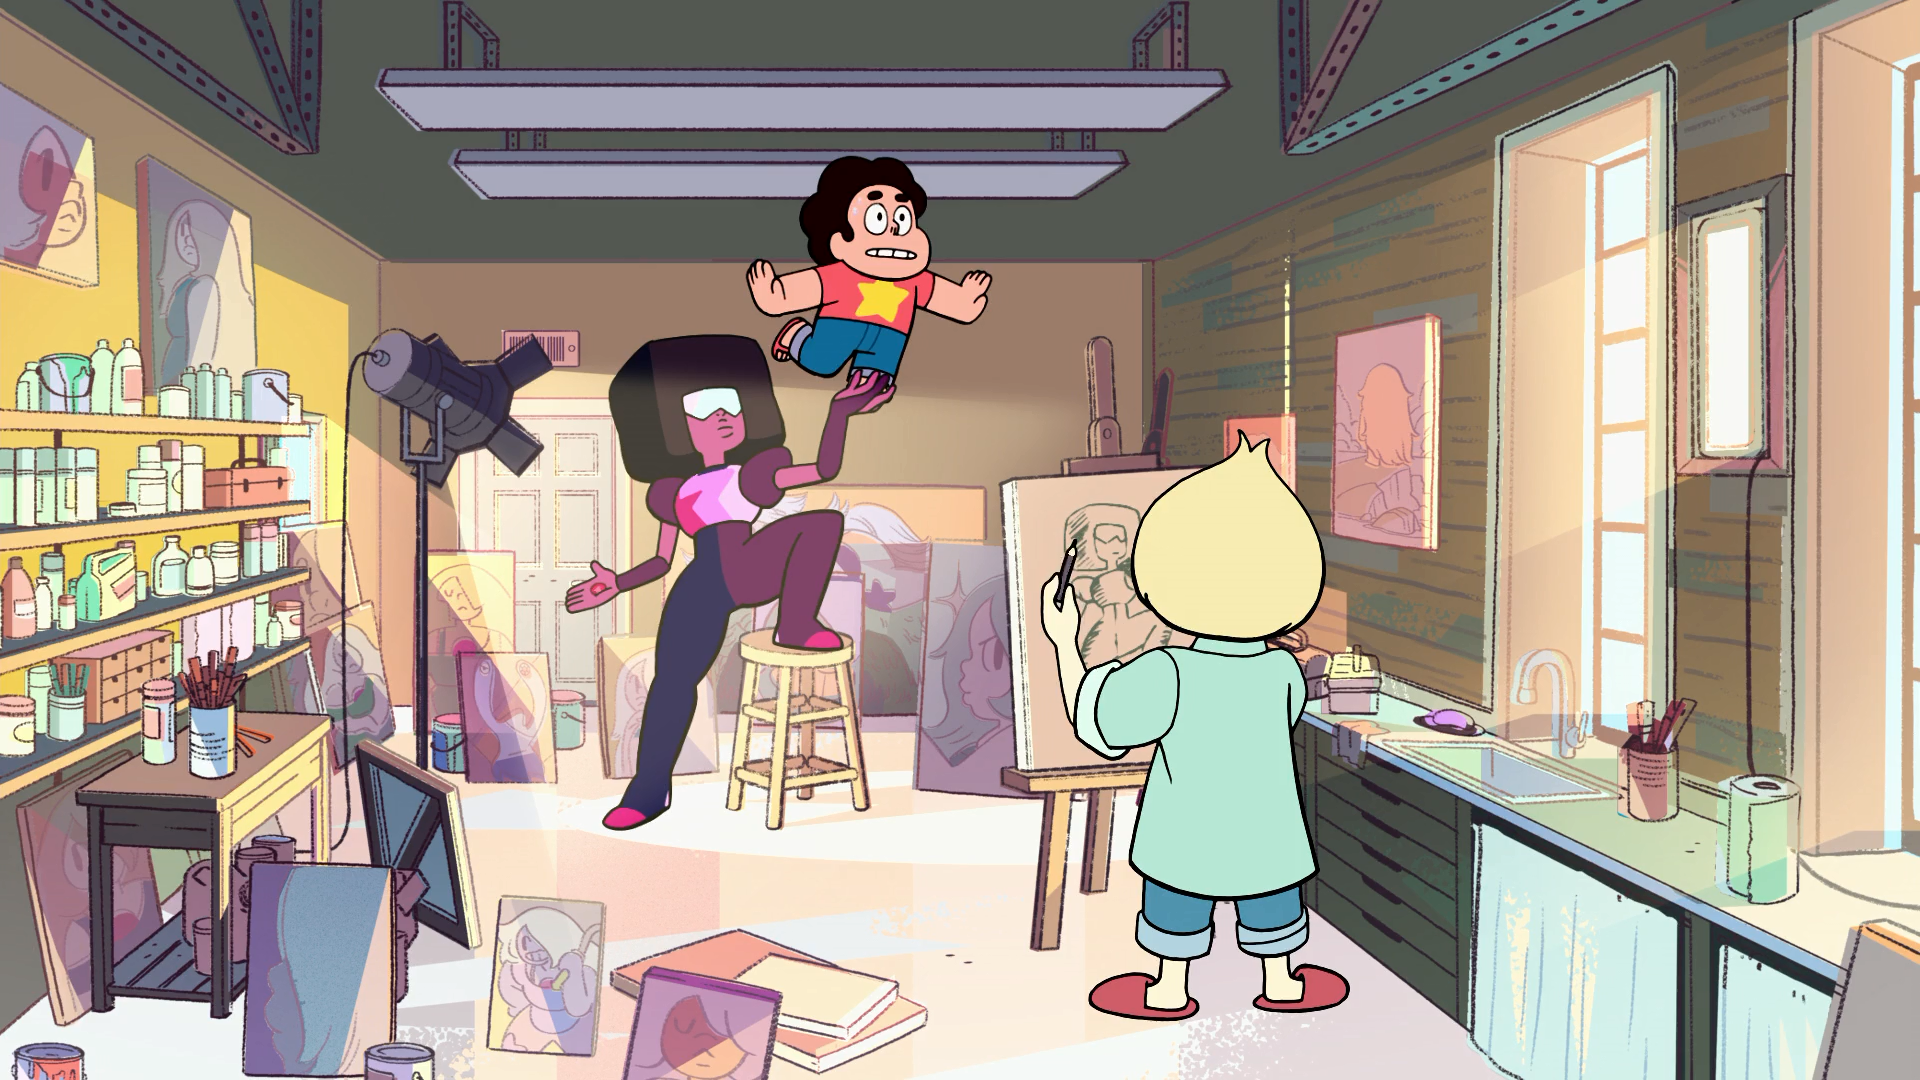 Garnet & Steven Get Painted & Chase a Cat